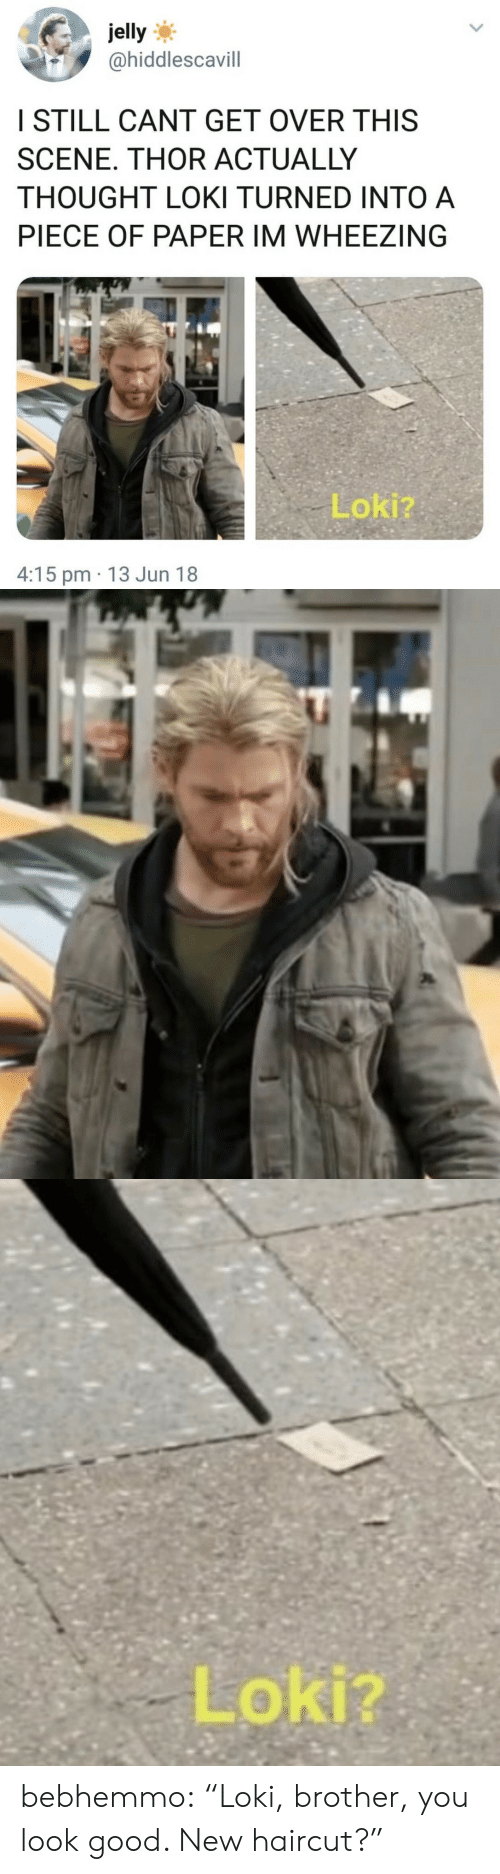 """You Look Good: jelly  @hiddlescavill  ISTILL CANT GET OVER THIS  SCENE. THOR ACTUALLY  THOUGHT LOKI TURNED INTO A  PIECE OF PAPER IM WHEEZING  Lokiz  4:15 pm 13 Jun 18   Loki? bebhemmo:  """"Loki, brother, you look good. New haircut?"""""""